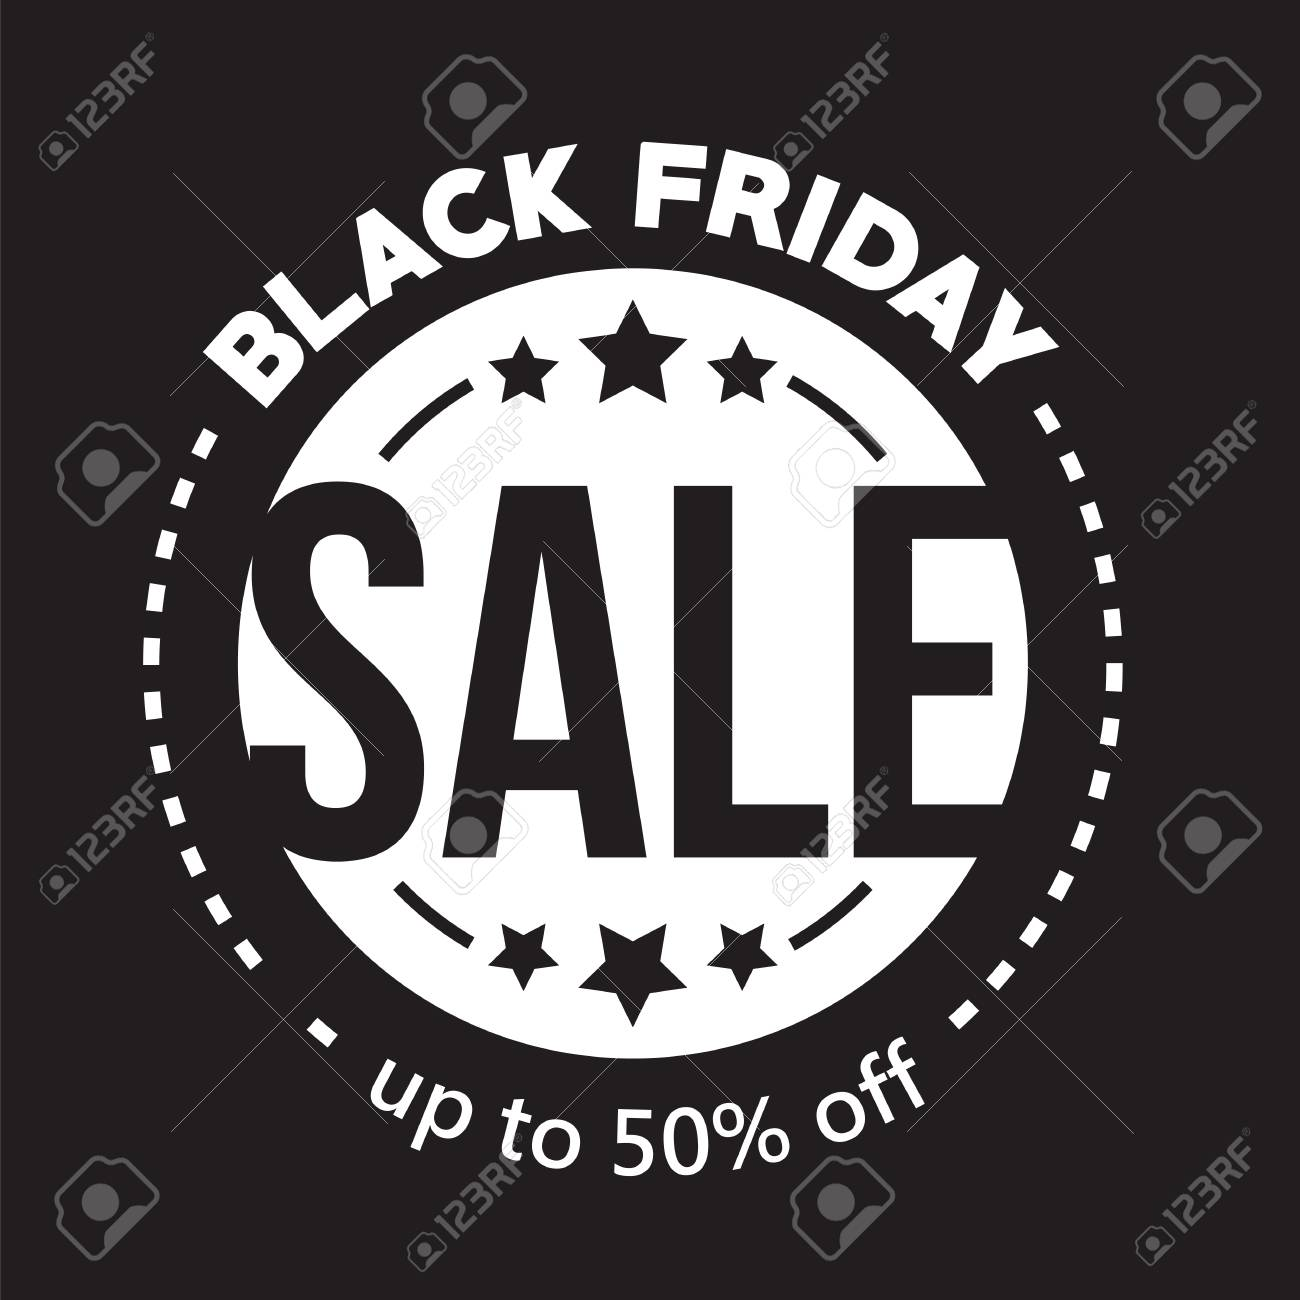 Black Friday Sale Big Sale Fifty Percent On Black Friday Shopping Vector Illustration Vector Picture Autumn Discounts In Store On Black Friday Sale